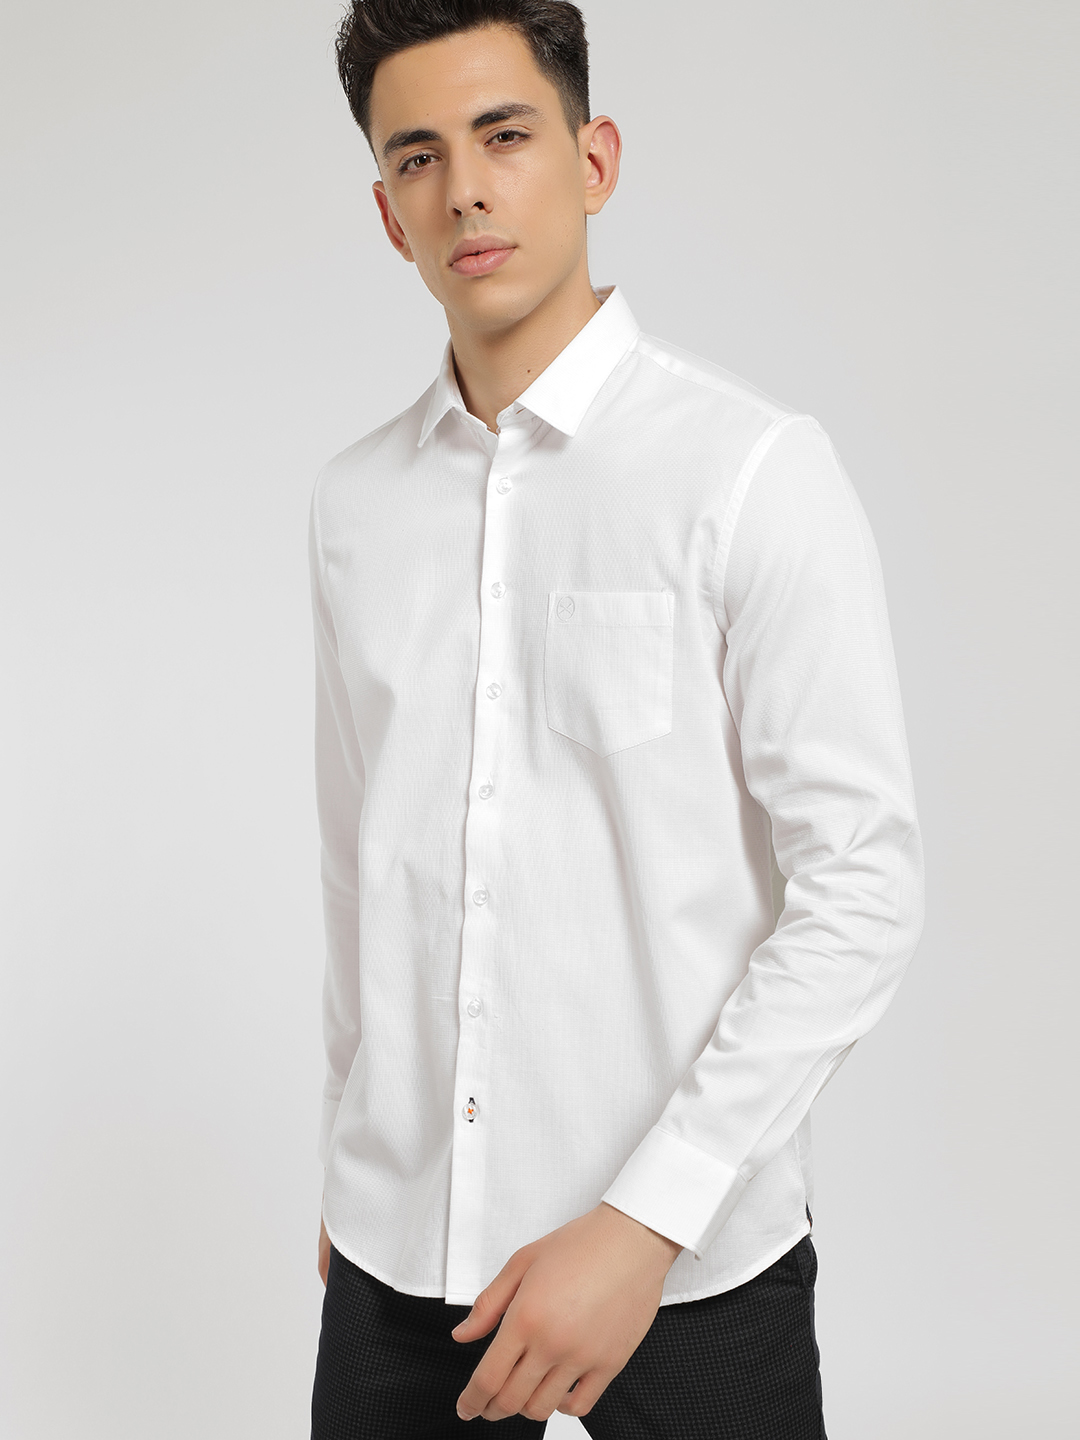 SCULLERS White Long Sleeve Dobby Print Shirt 1